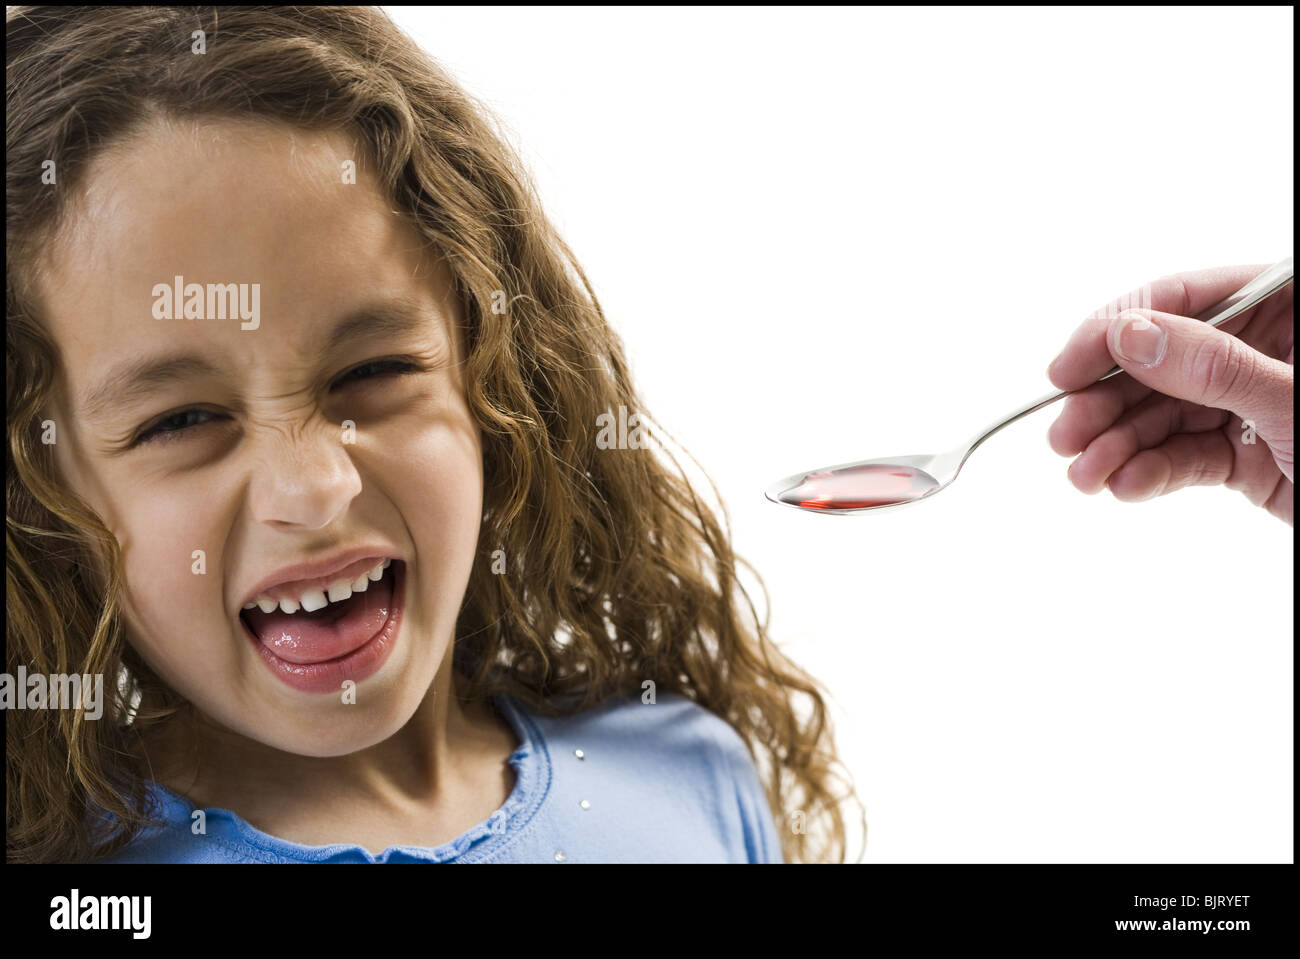 Young girl taking a spoonful of medicine - Stock Image